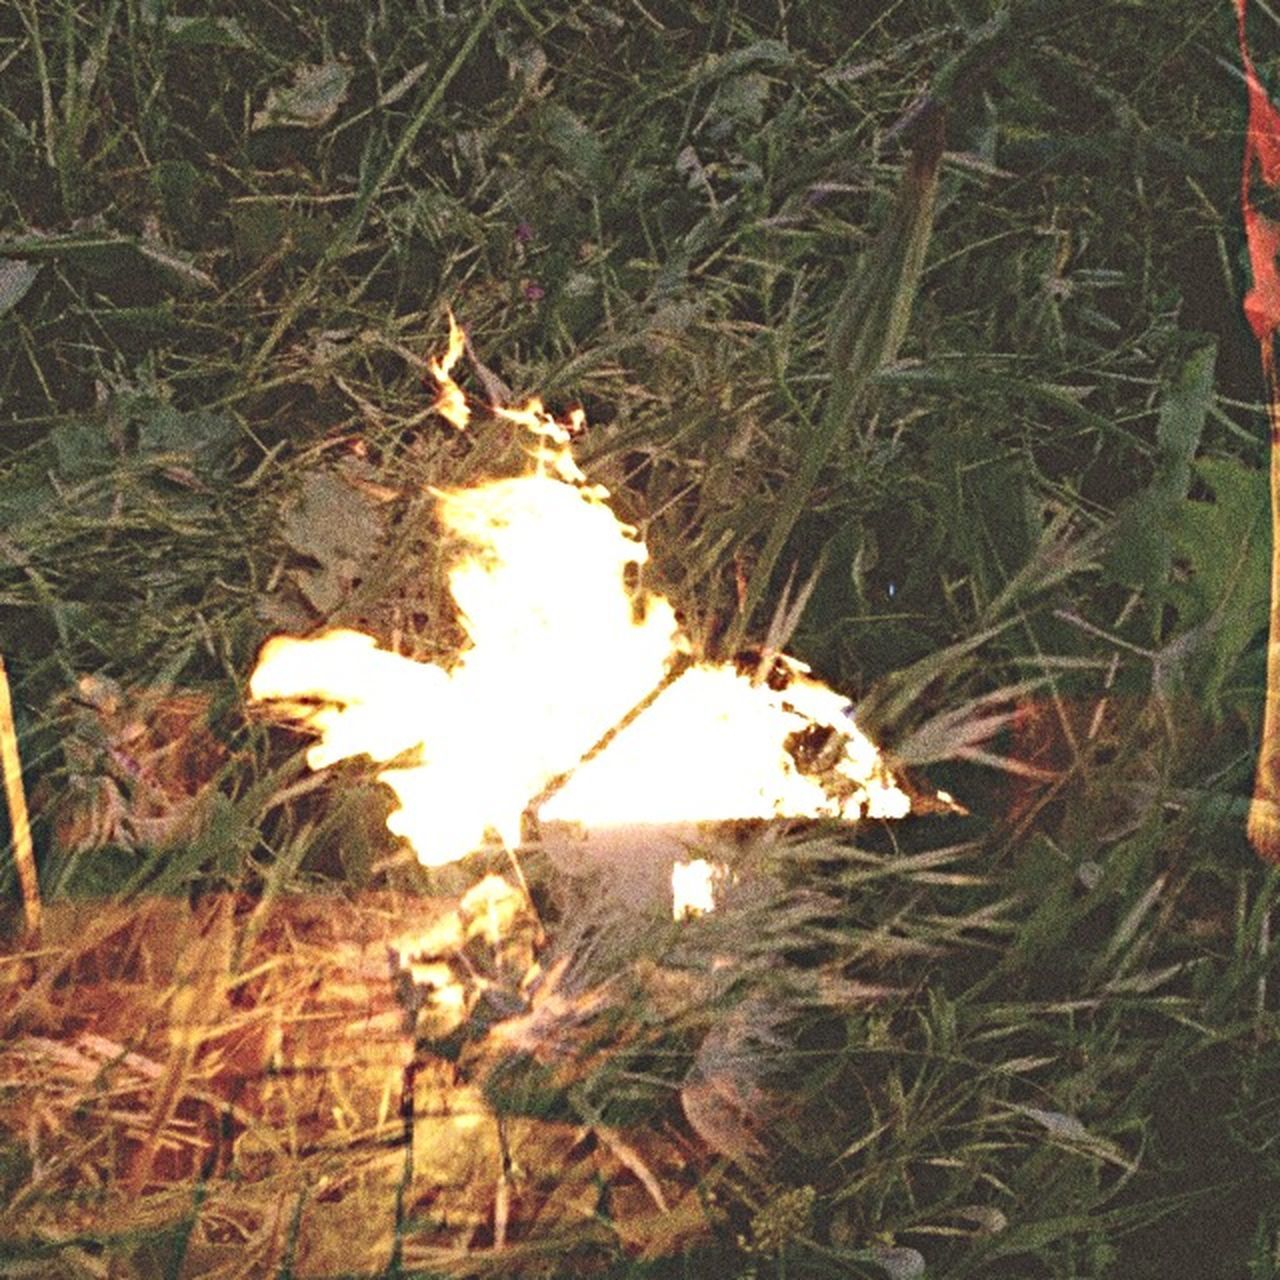 burning, flame, no people, high angle view, field, grass, outdoors, night, illuminated, nature, close-up, bonfire